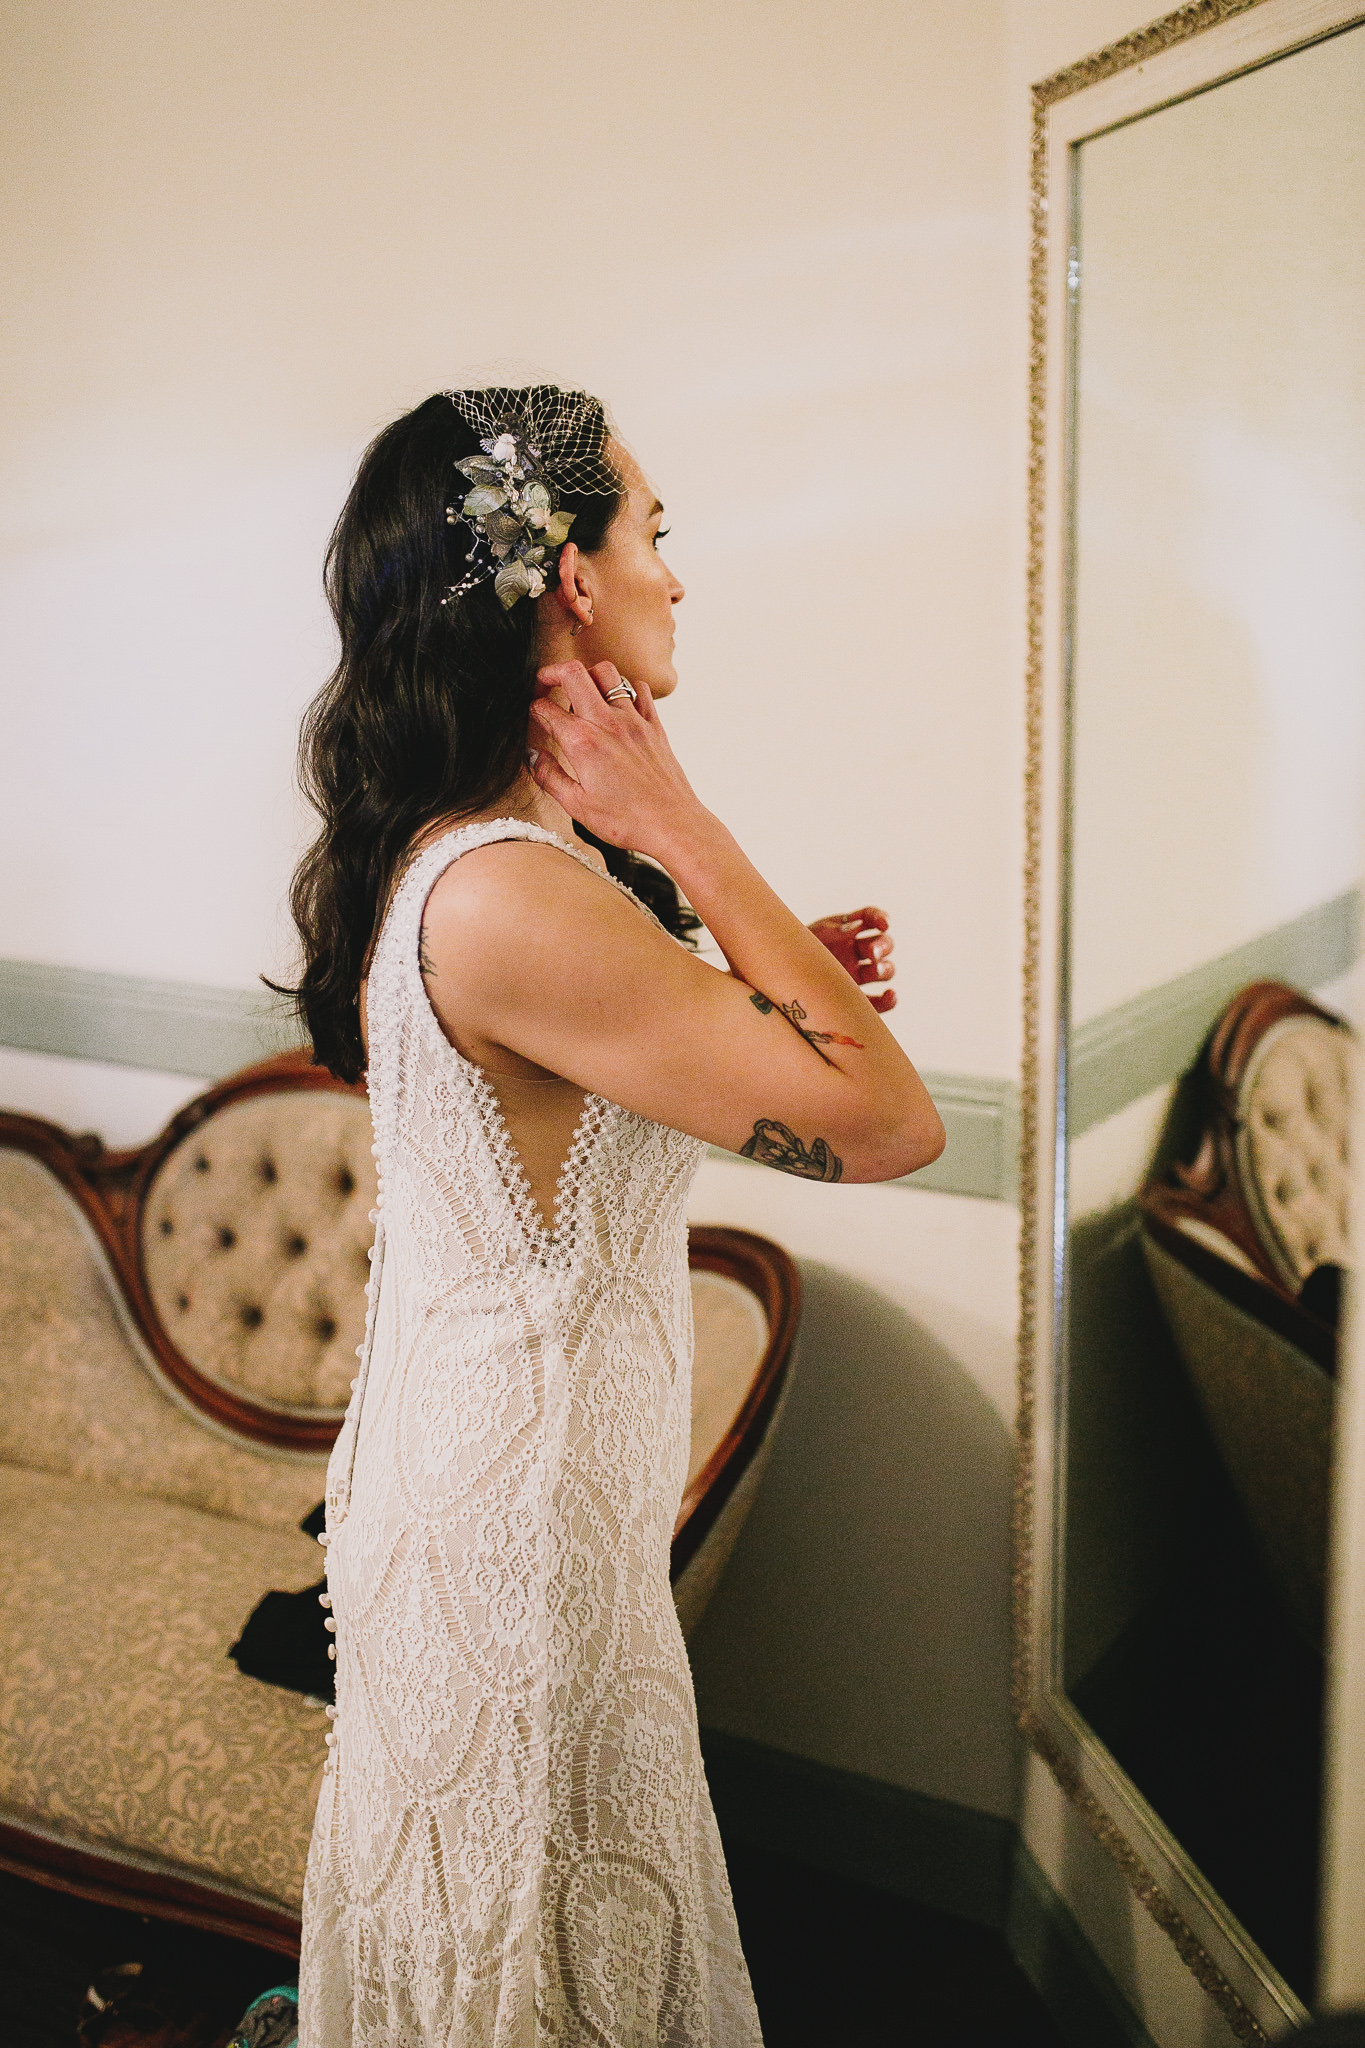 Archer Inspired Photography Sara and Aaron Winchester Mystery House NorCal San Jose California Wedding Photographer-42.jpg